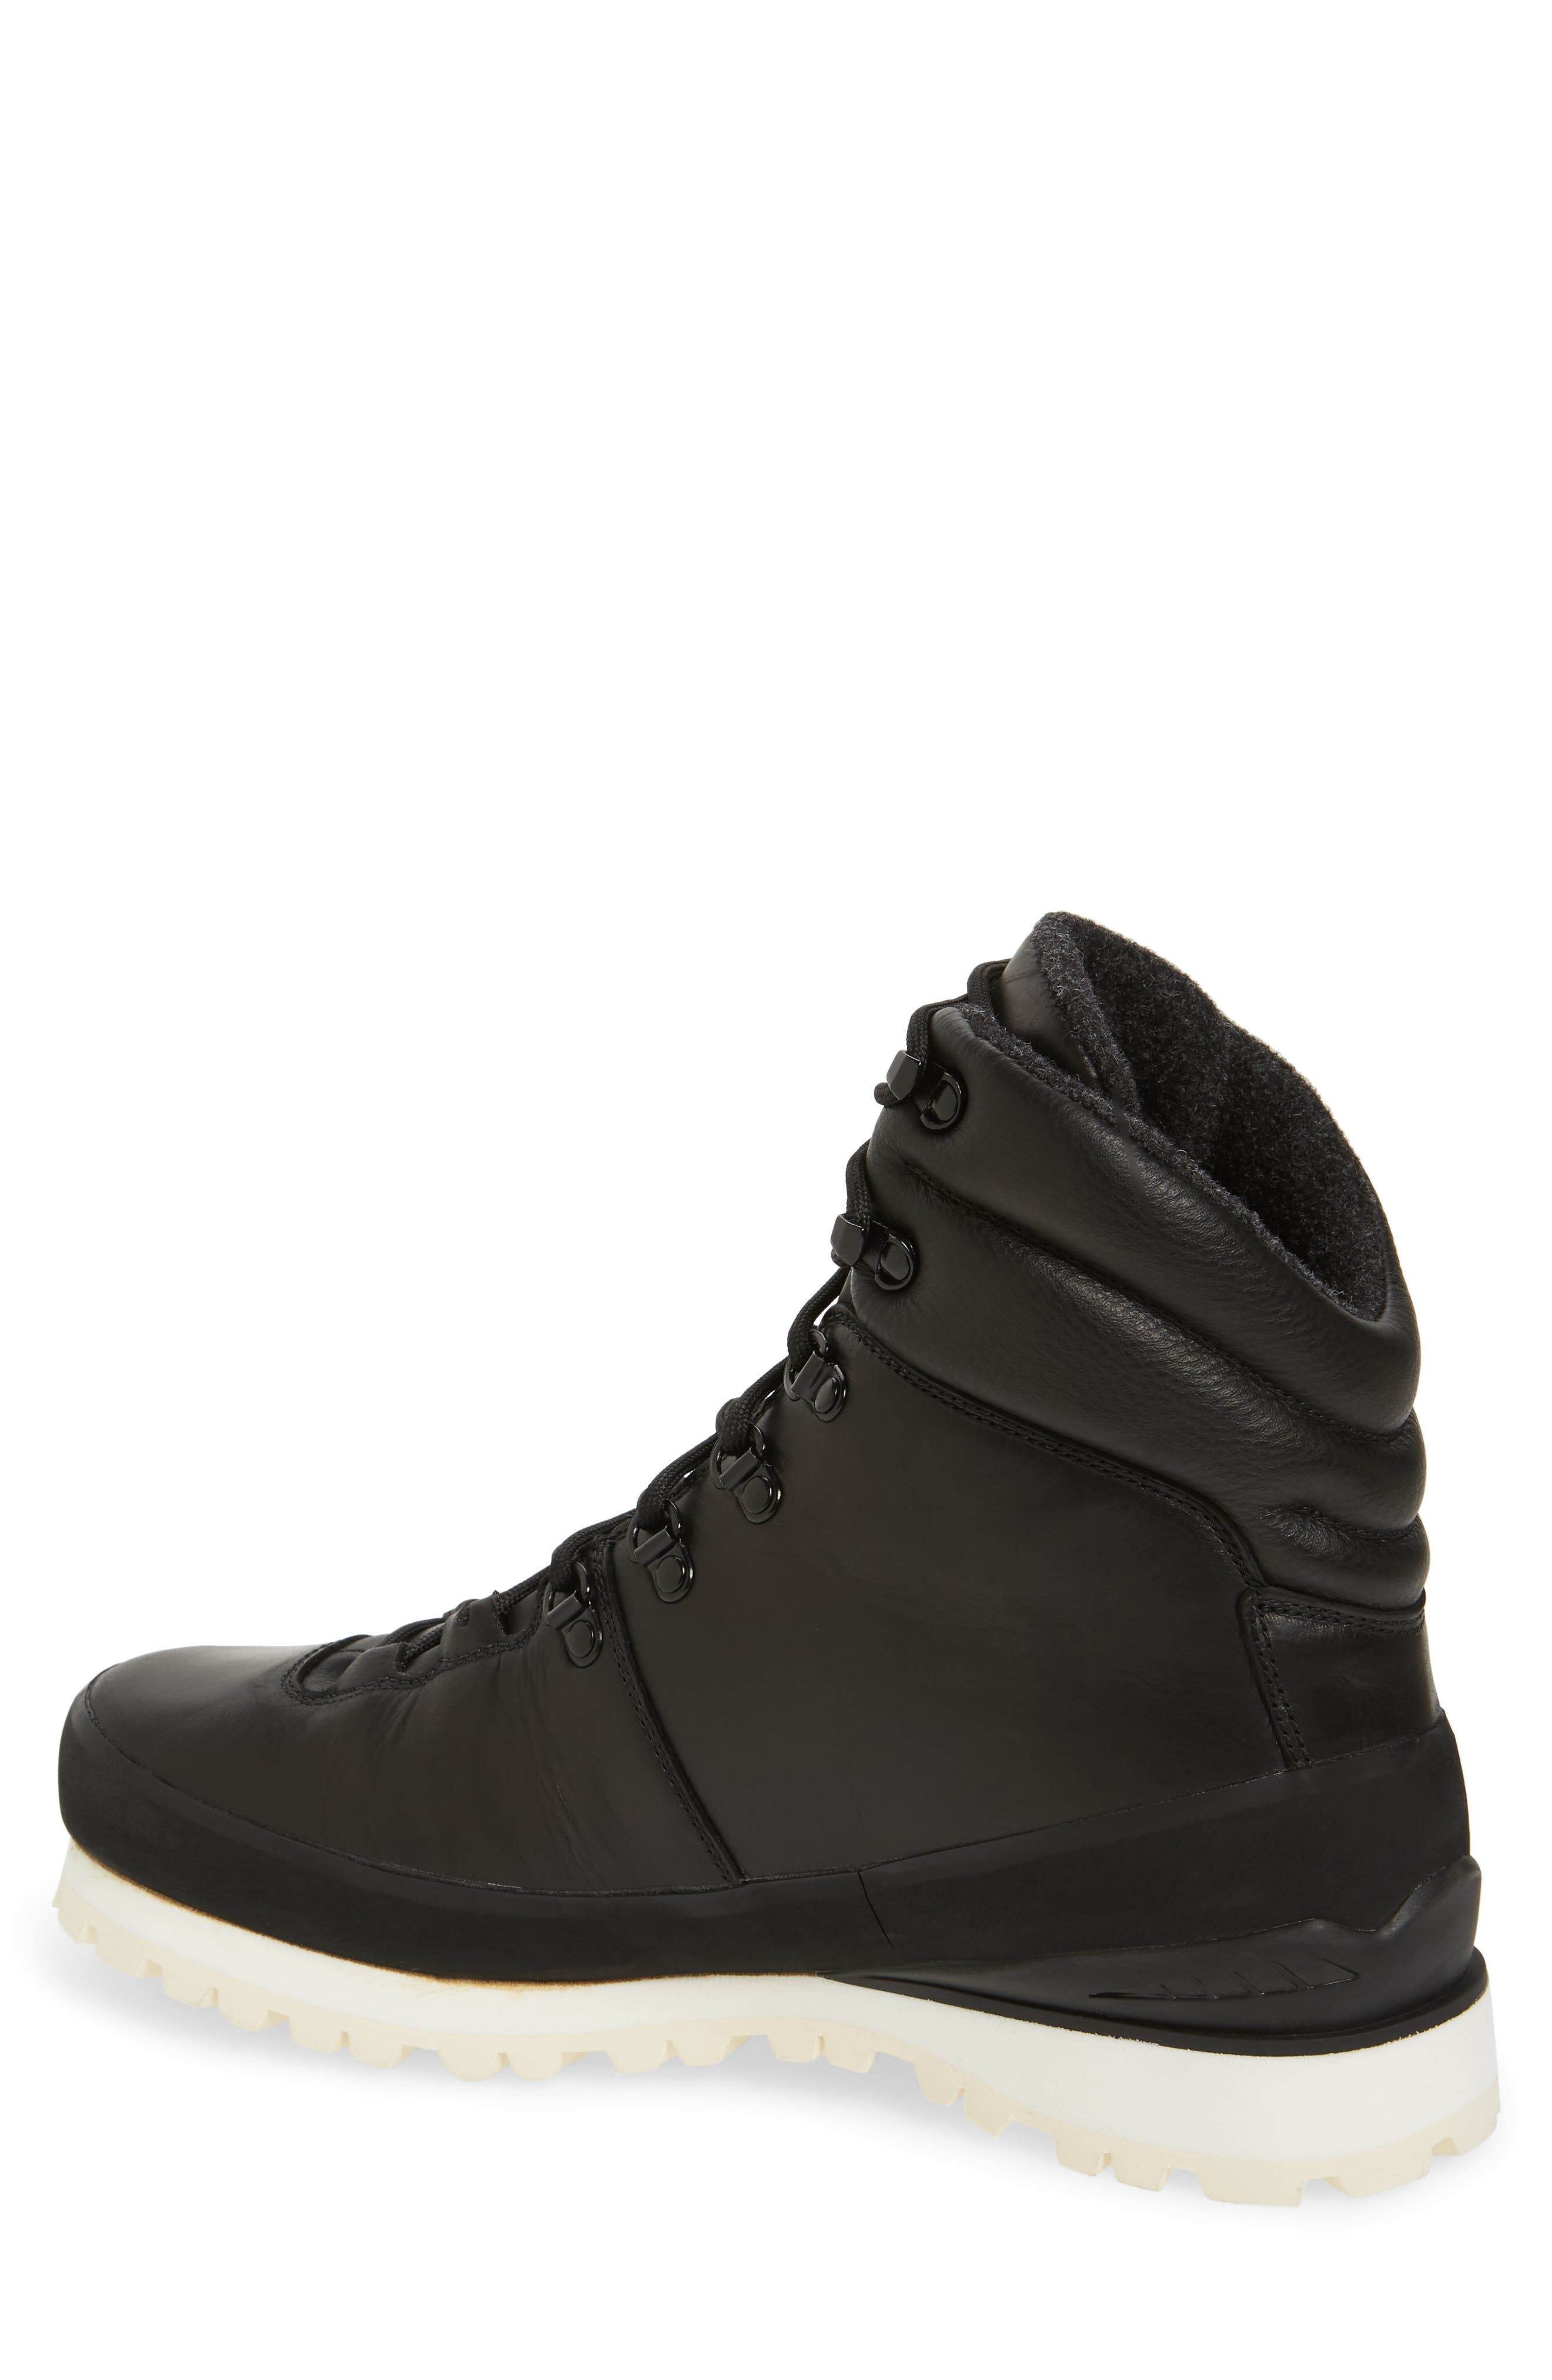 Alternate Image 2  - The North Face Cryos Hiker Boot (Men)